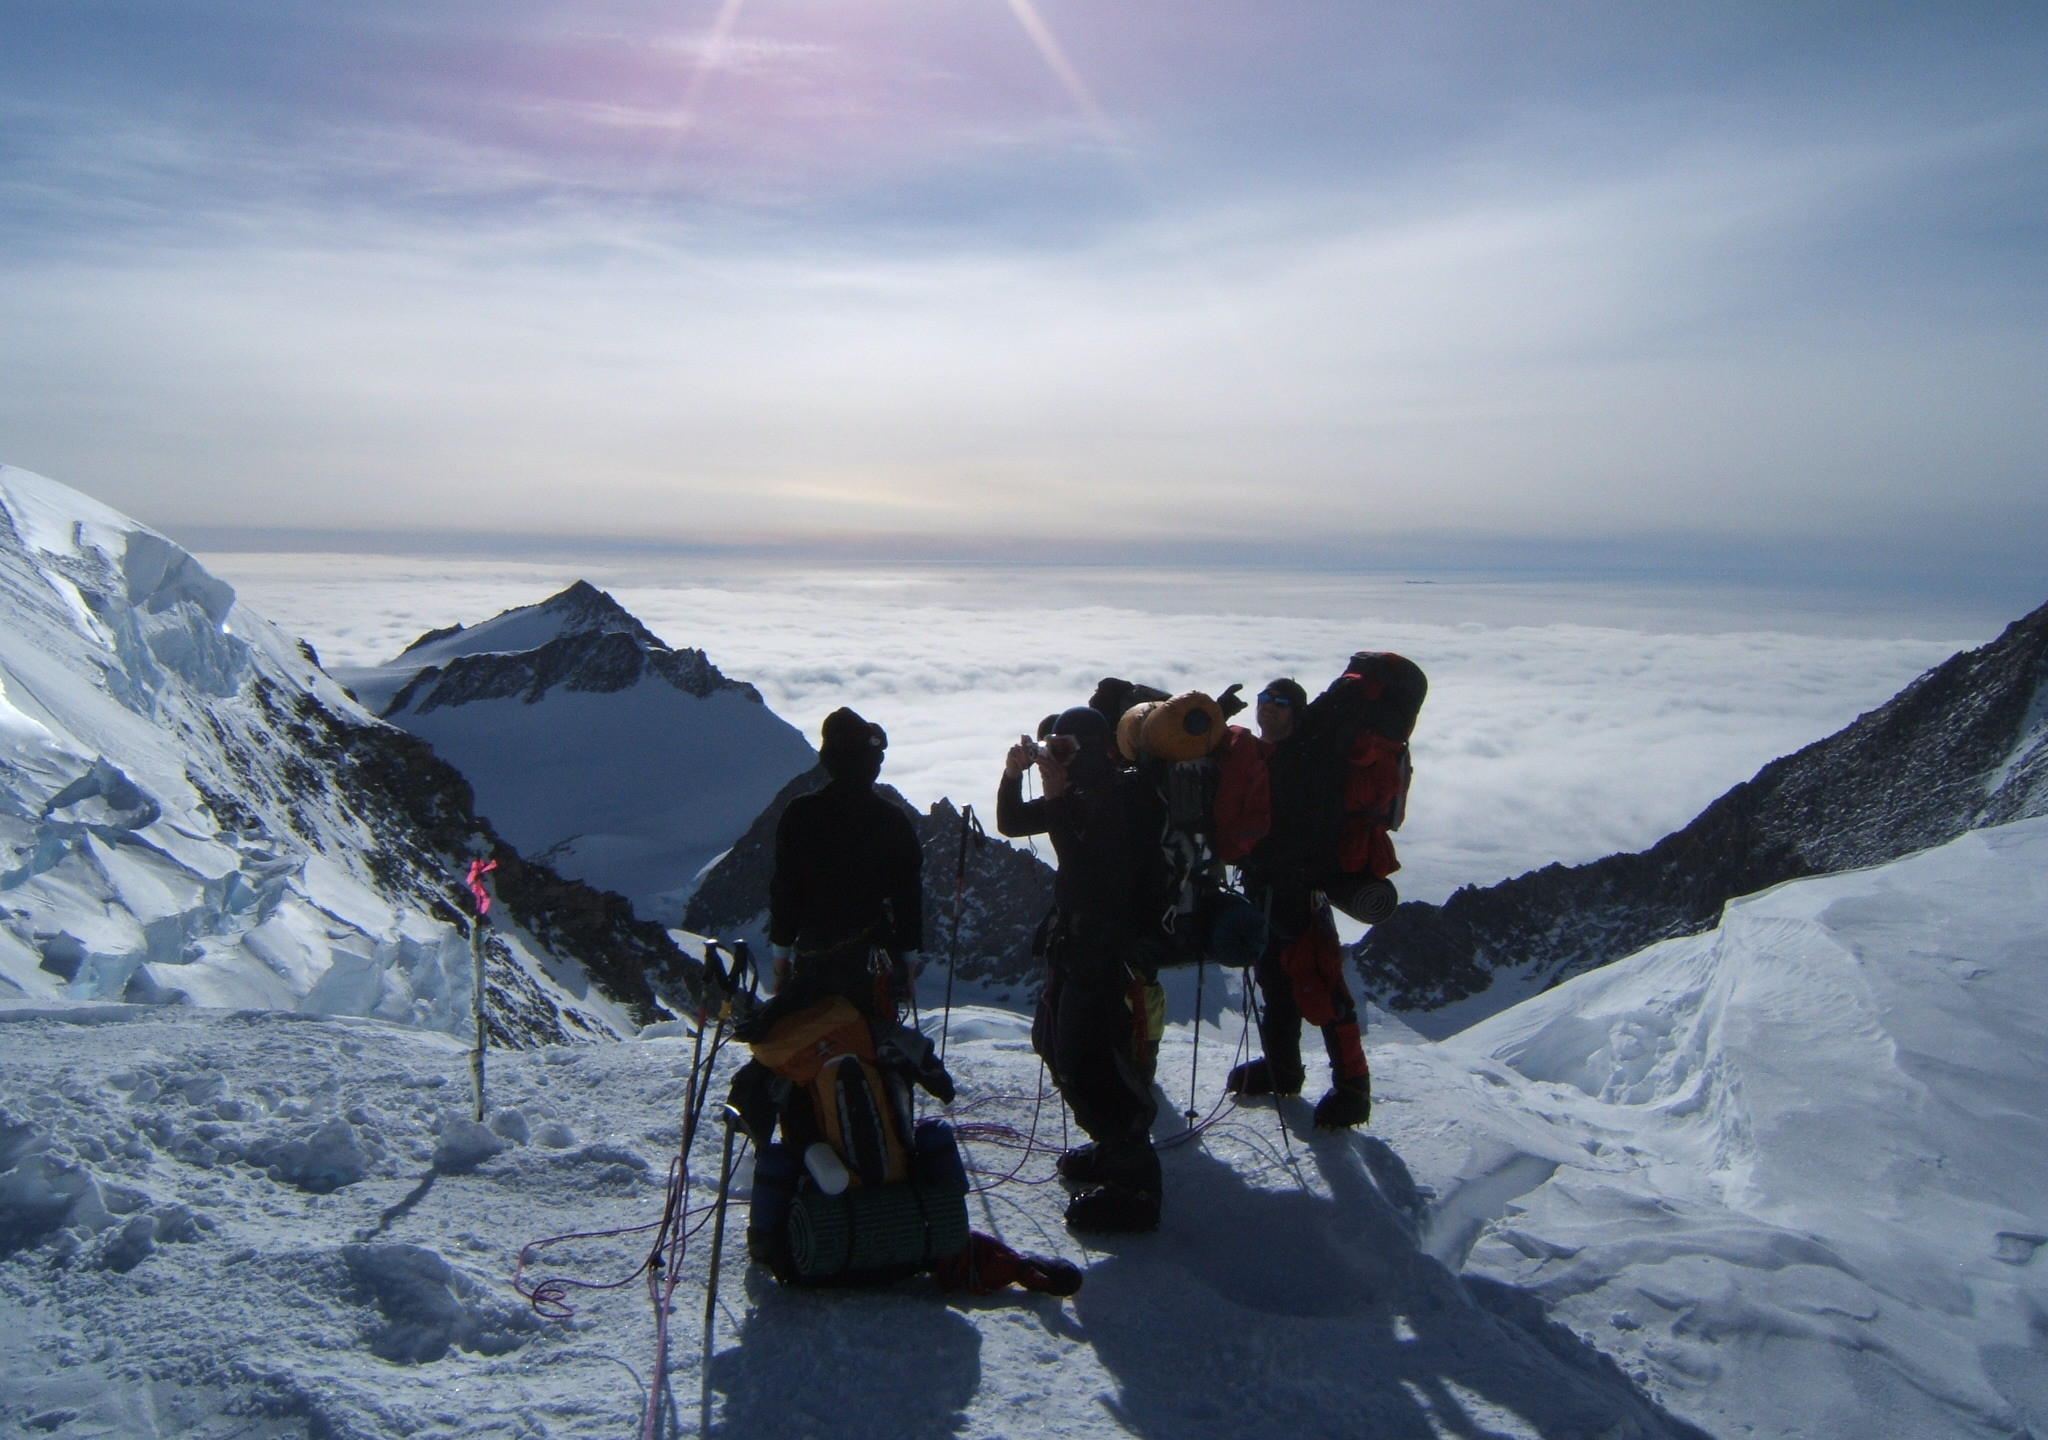 On route to high camp